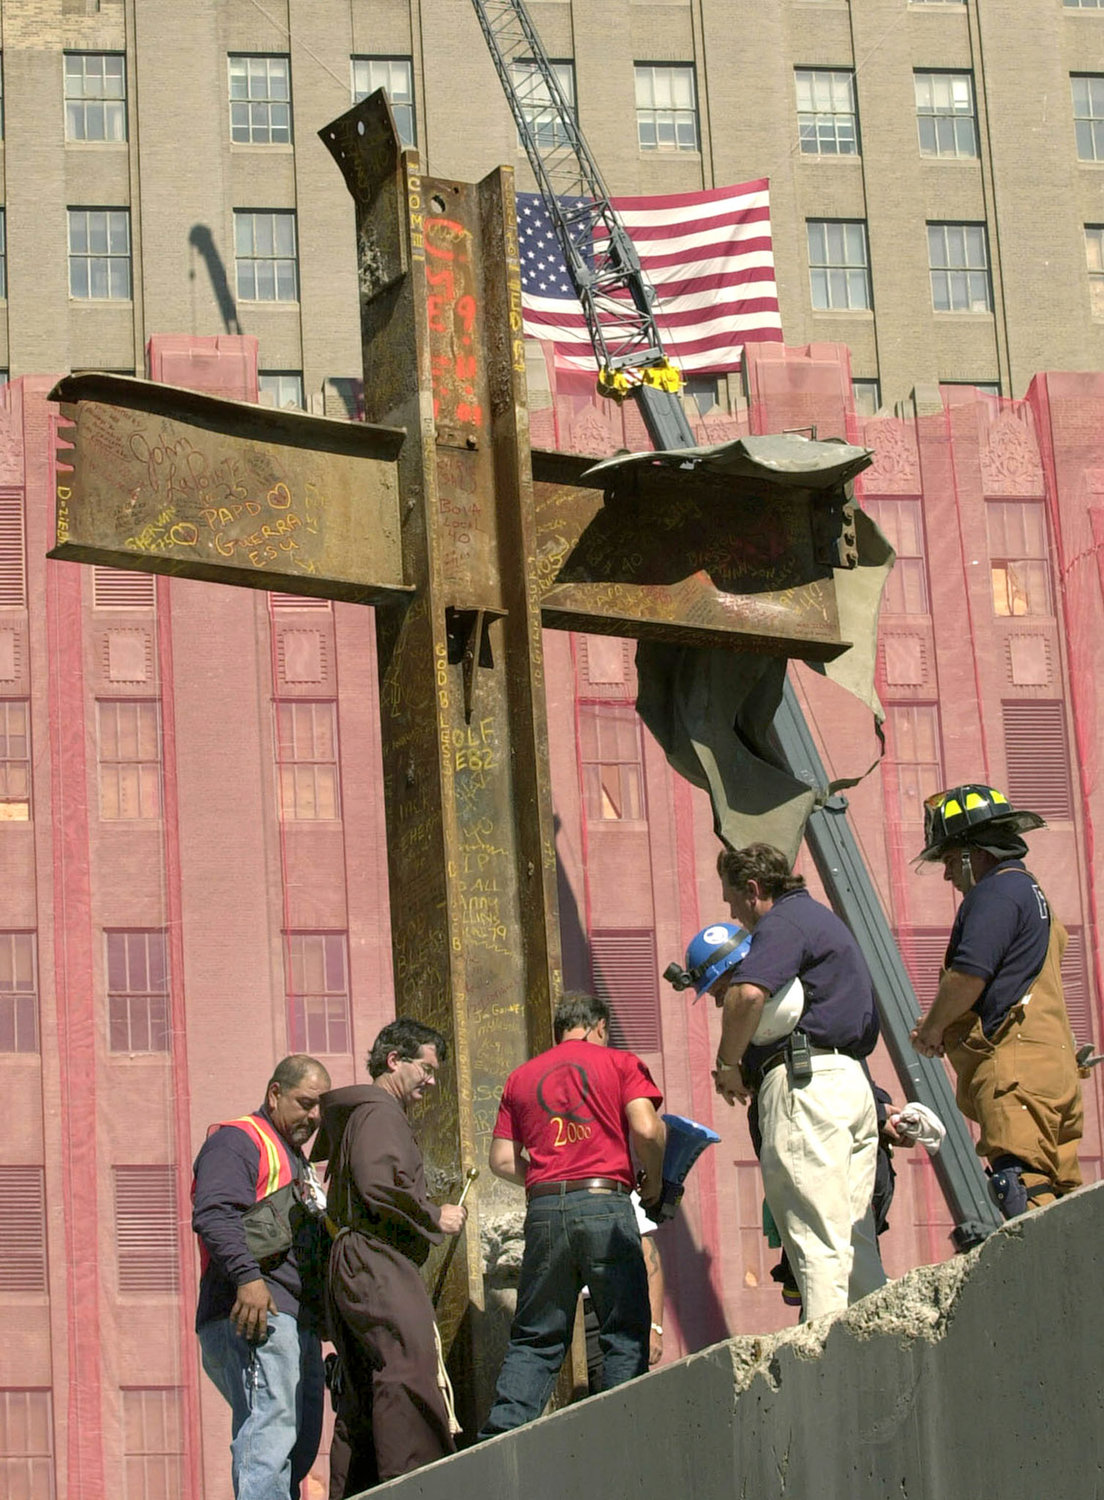 Franciscan Father Brian Jordan, standing with laborers and emergency workers in Oct. 5, 2001, blesses a 17-foot-tall cross formed by steel beams that was recovered from the rubble of the World Trade Center in New York. Msgr. John Delendick, a longtime New York Fire Department chaplain, still recalls the 9/11 terrorist attacks vividly. That first year after the attacks, he said, he doesn't remember how many funerals and memorial Masses he celebrated.